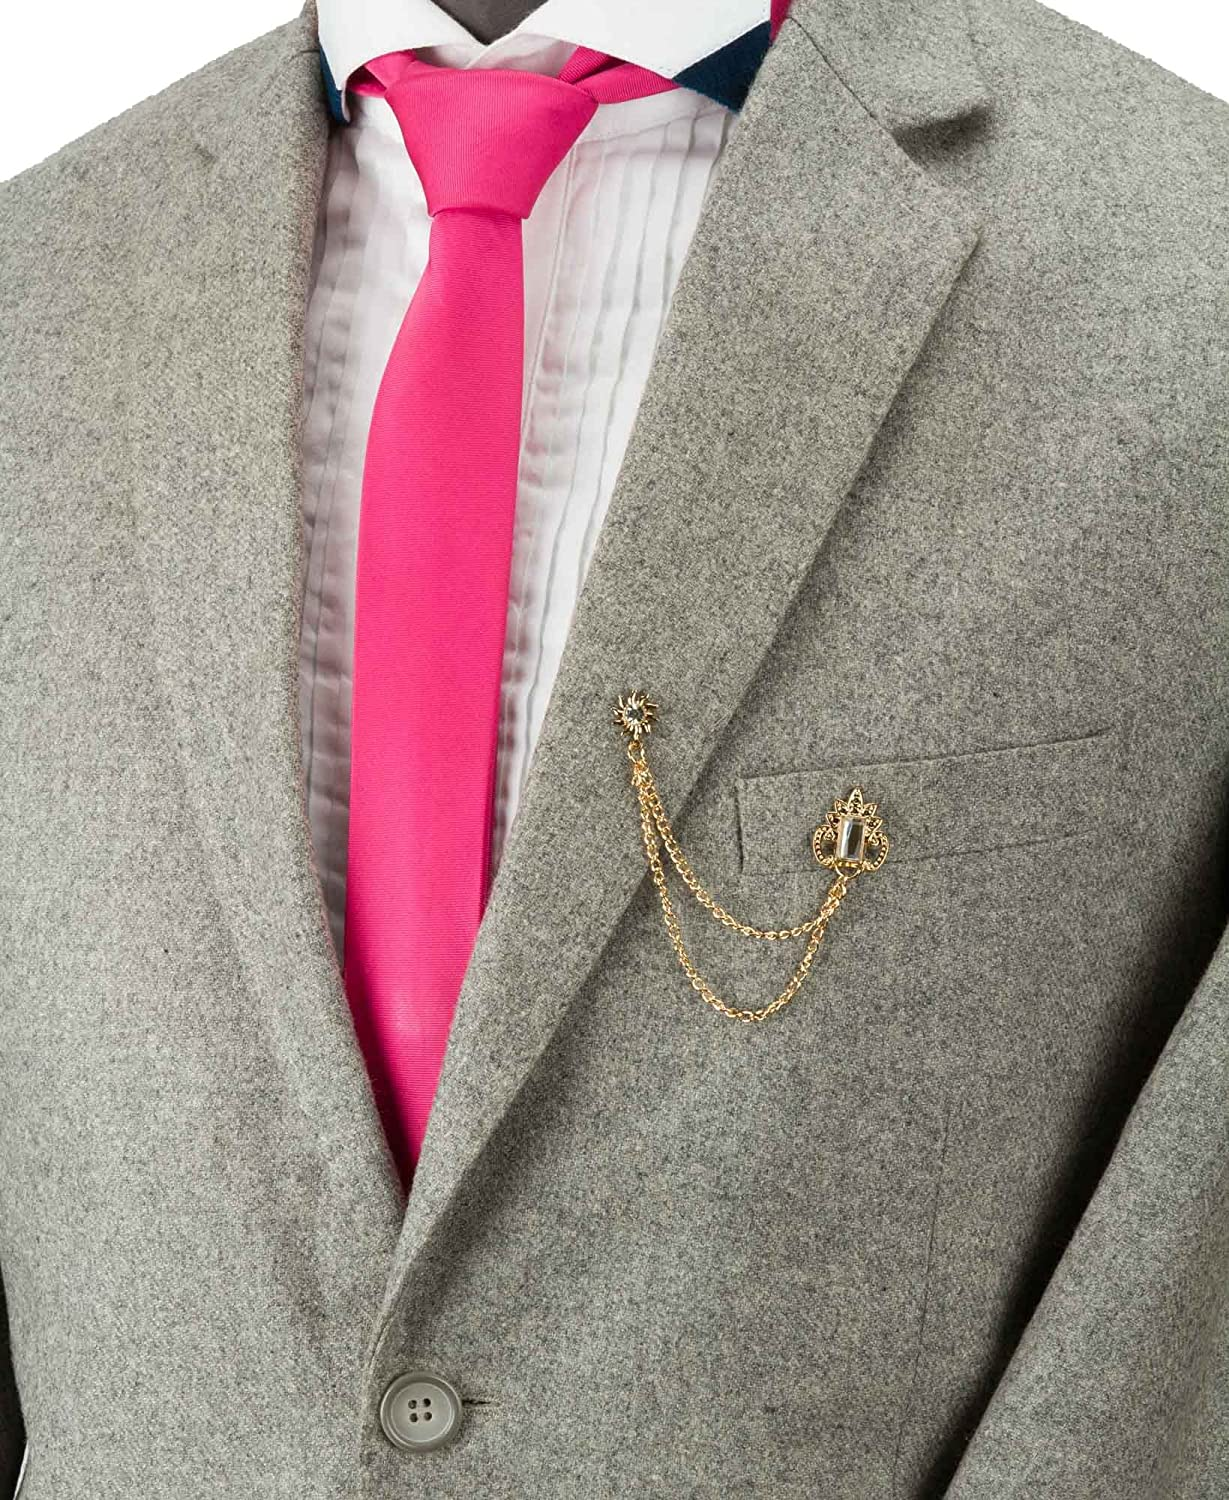 Knighthood Crowned Stone with Hanging Chain Lapel Pin Badge Coat Suit Wedding Gift Party Shirt Collar Accessories Brooch for Men